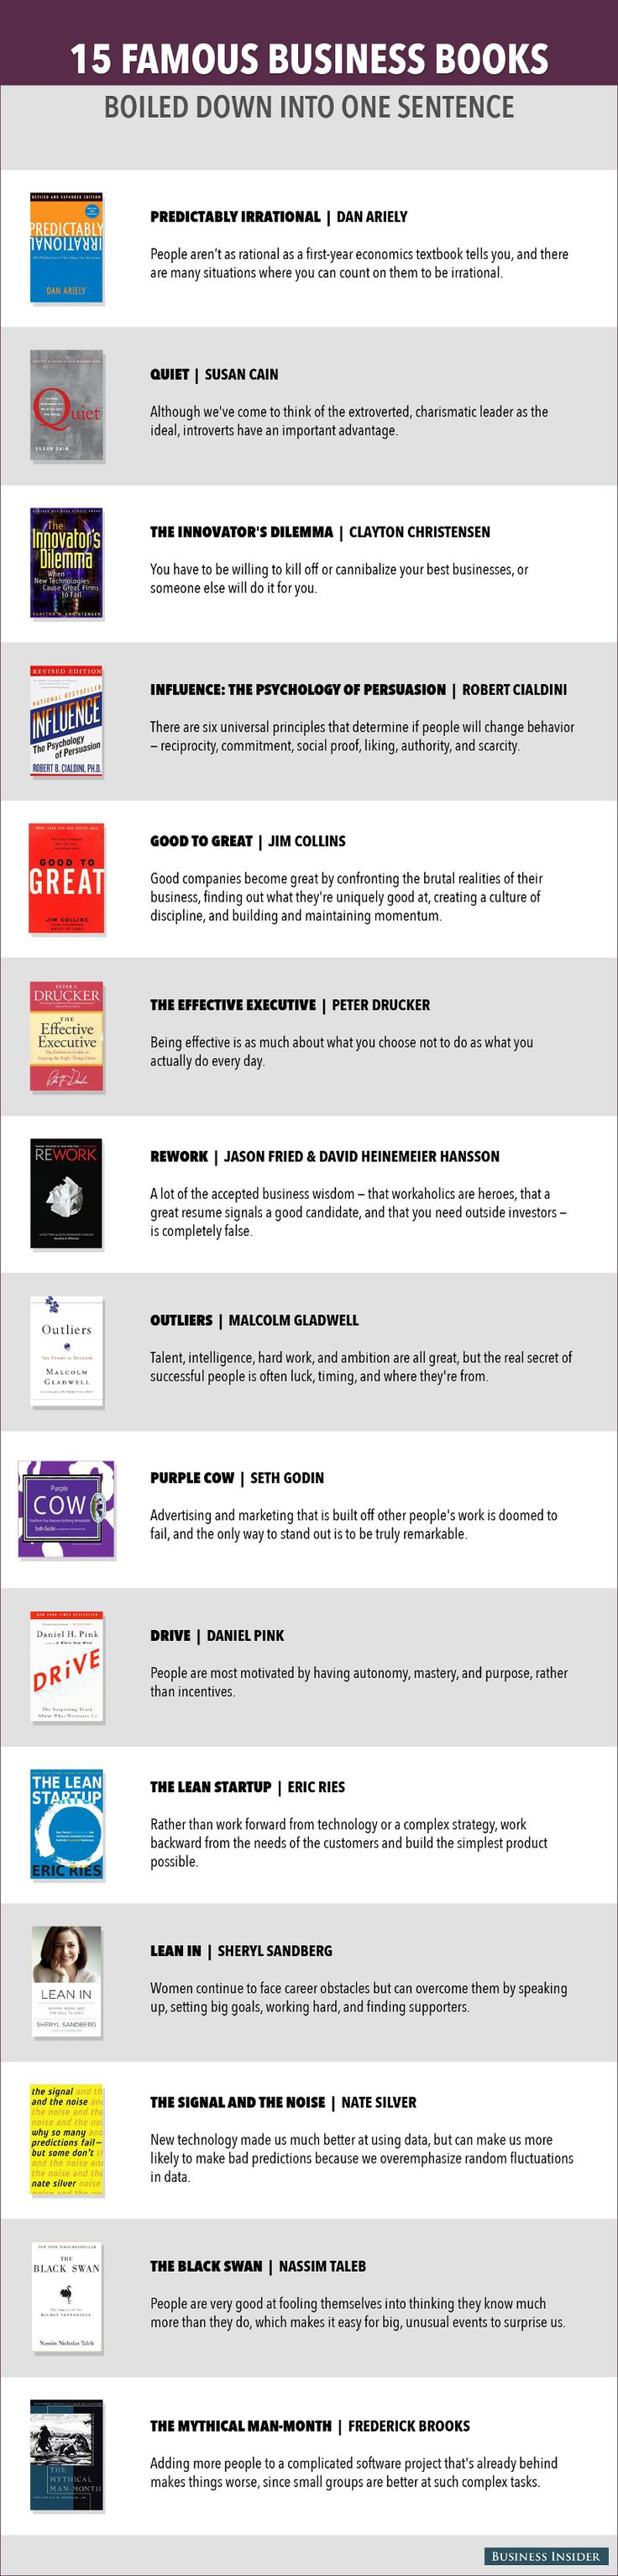 53 Vital Principles From The Top Business Books